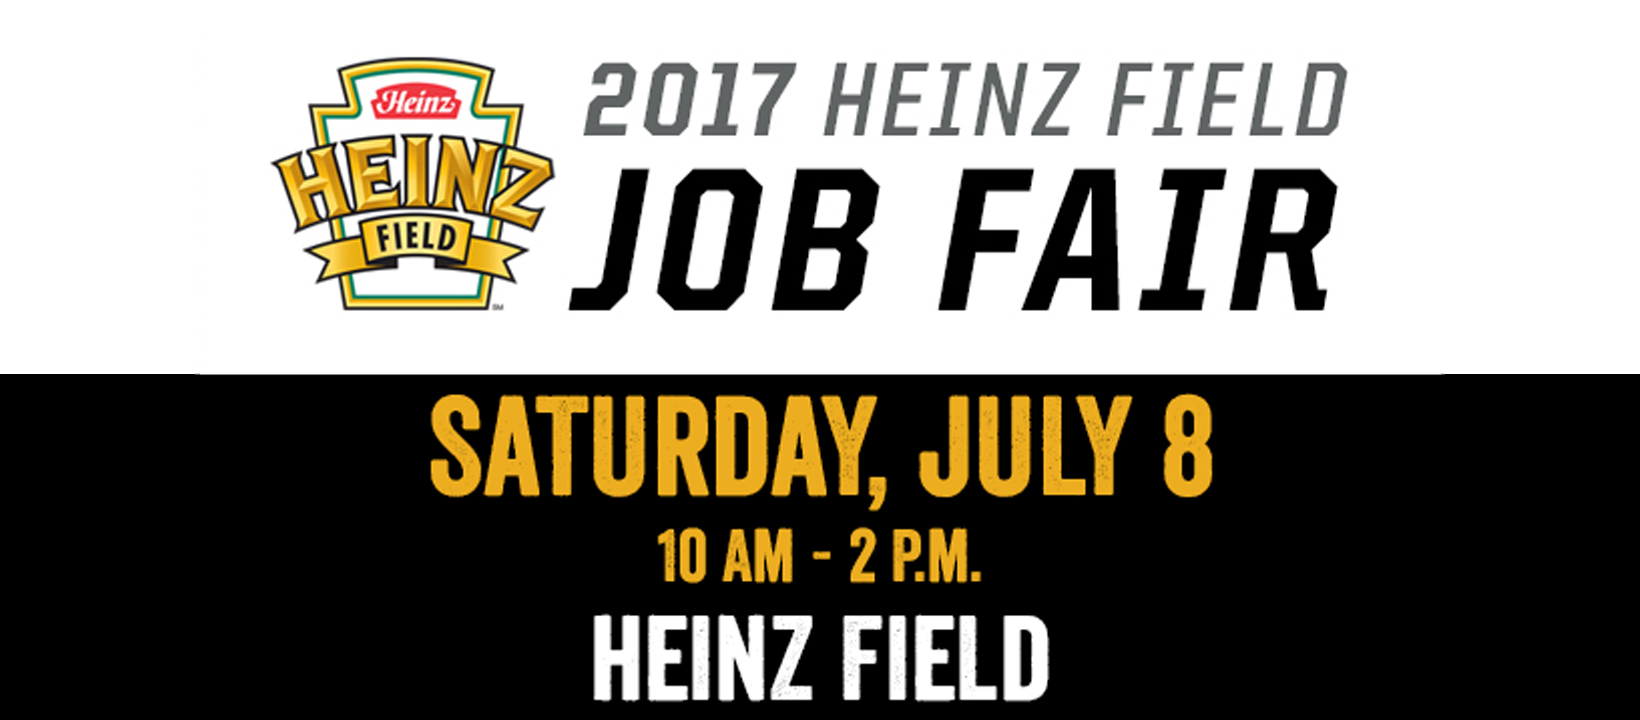 Heinz Field Job Fair - July 8, 2017